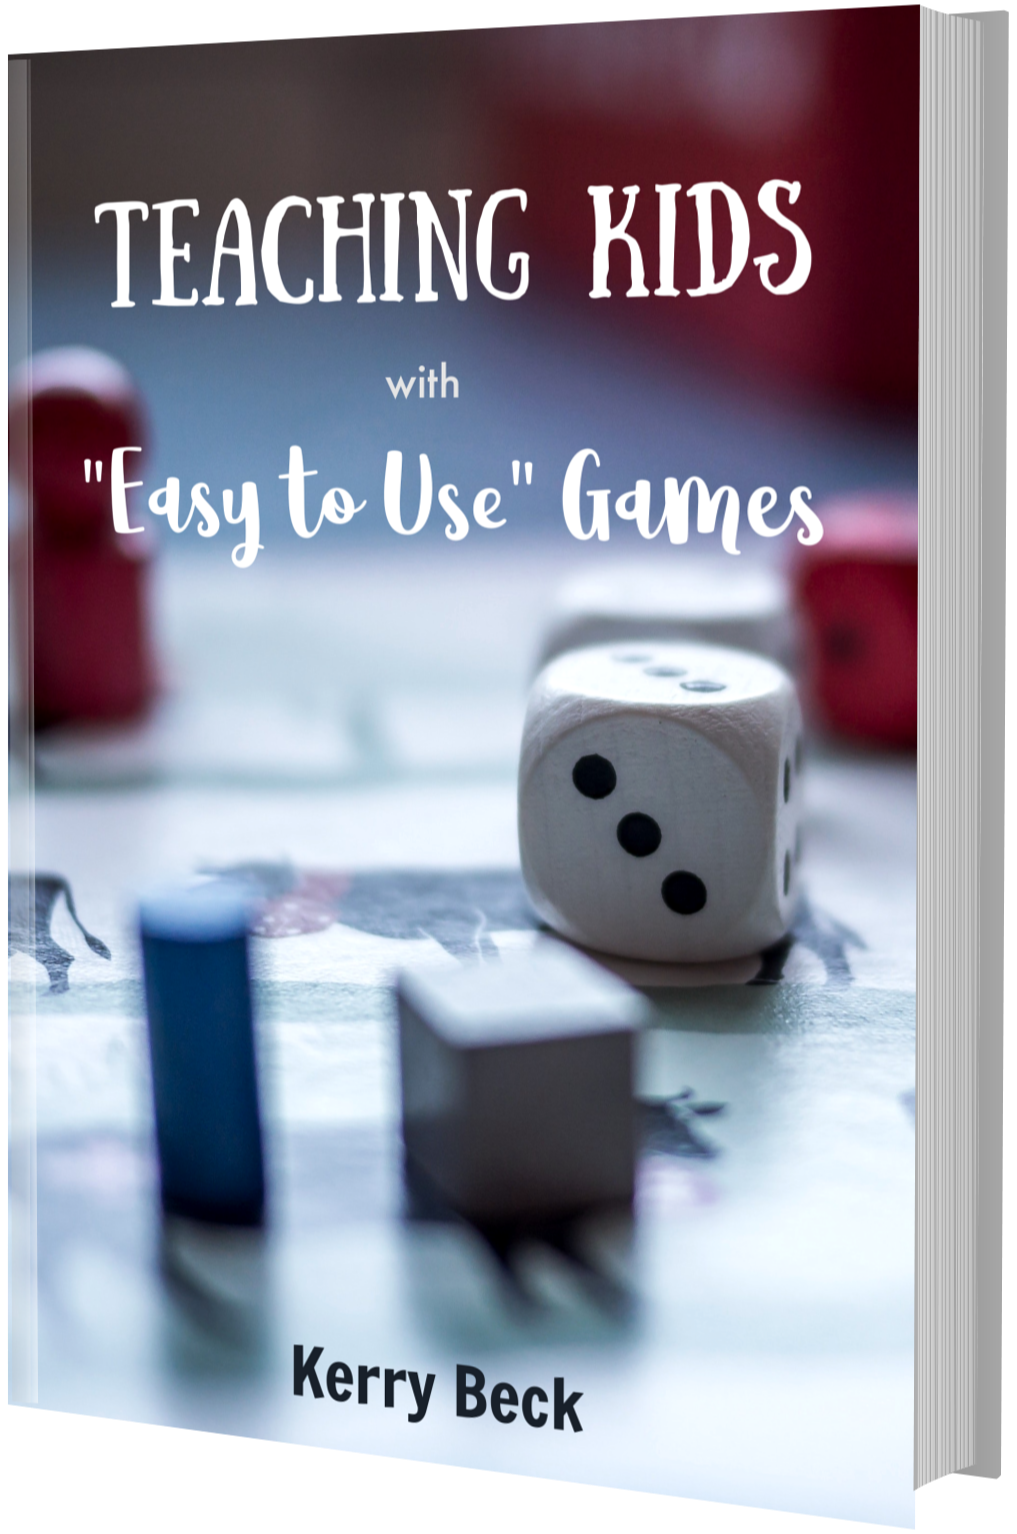 Teaching Kids with Easy to Use Games